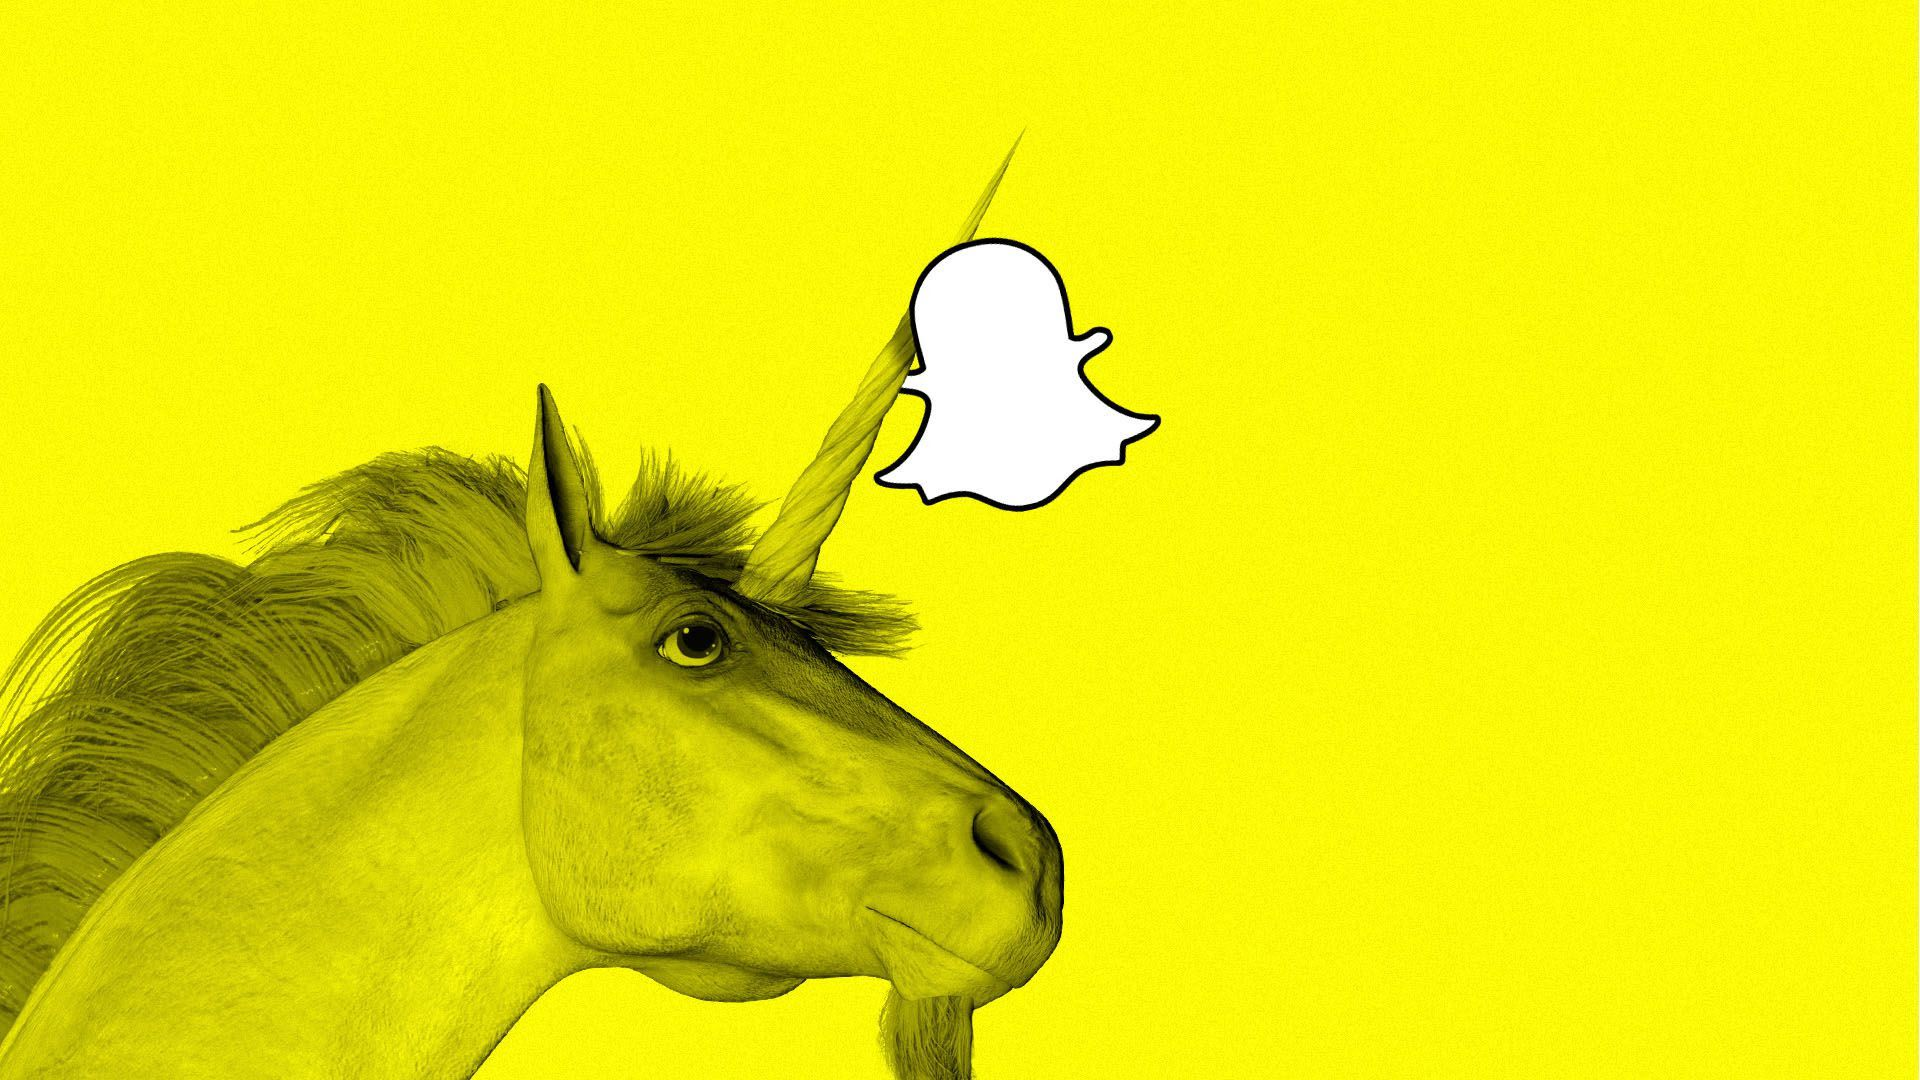 A unicorn carries the Snapchat symbol by its horns